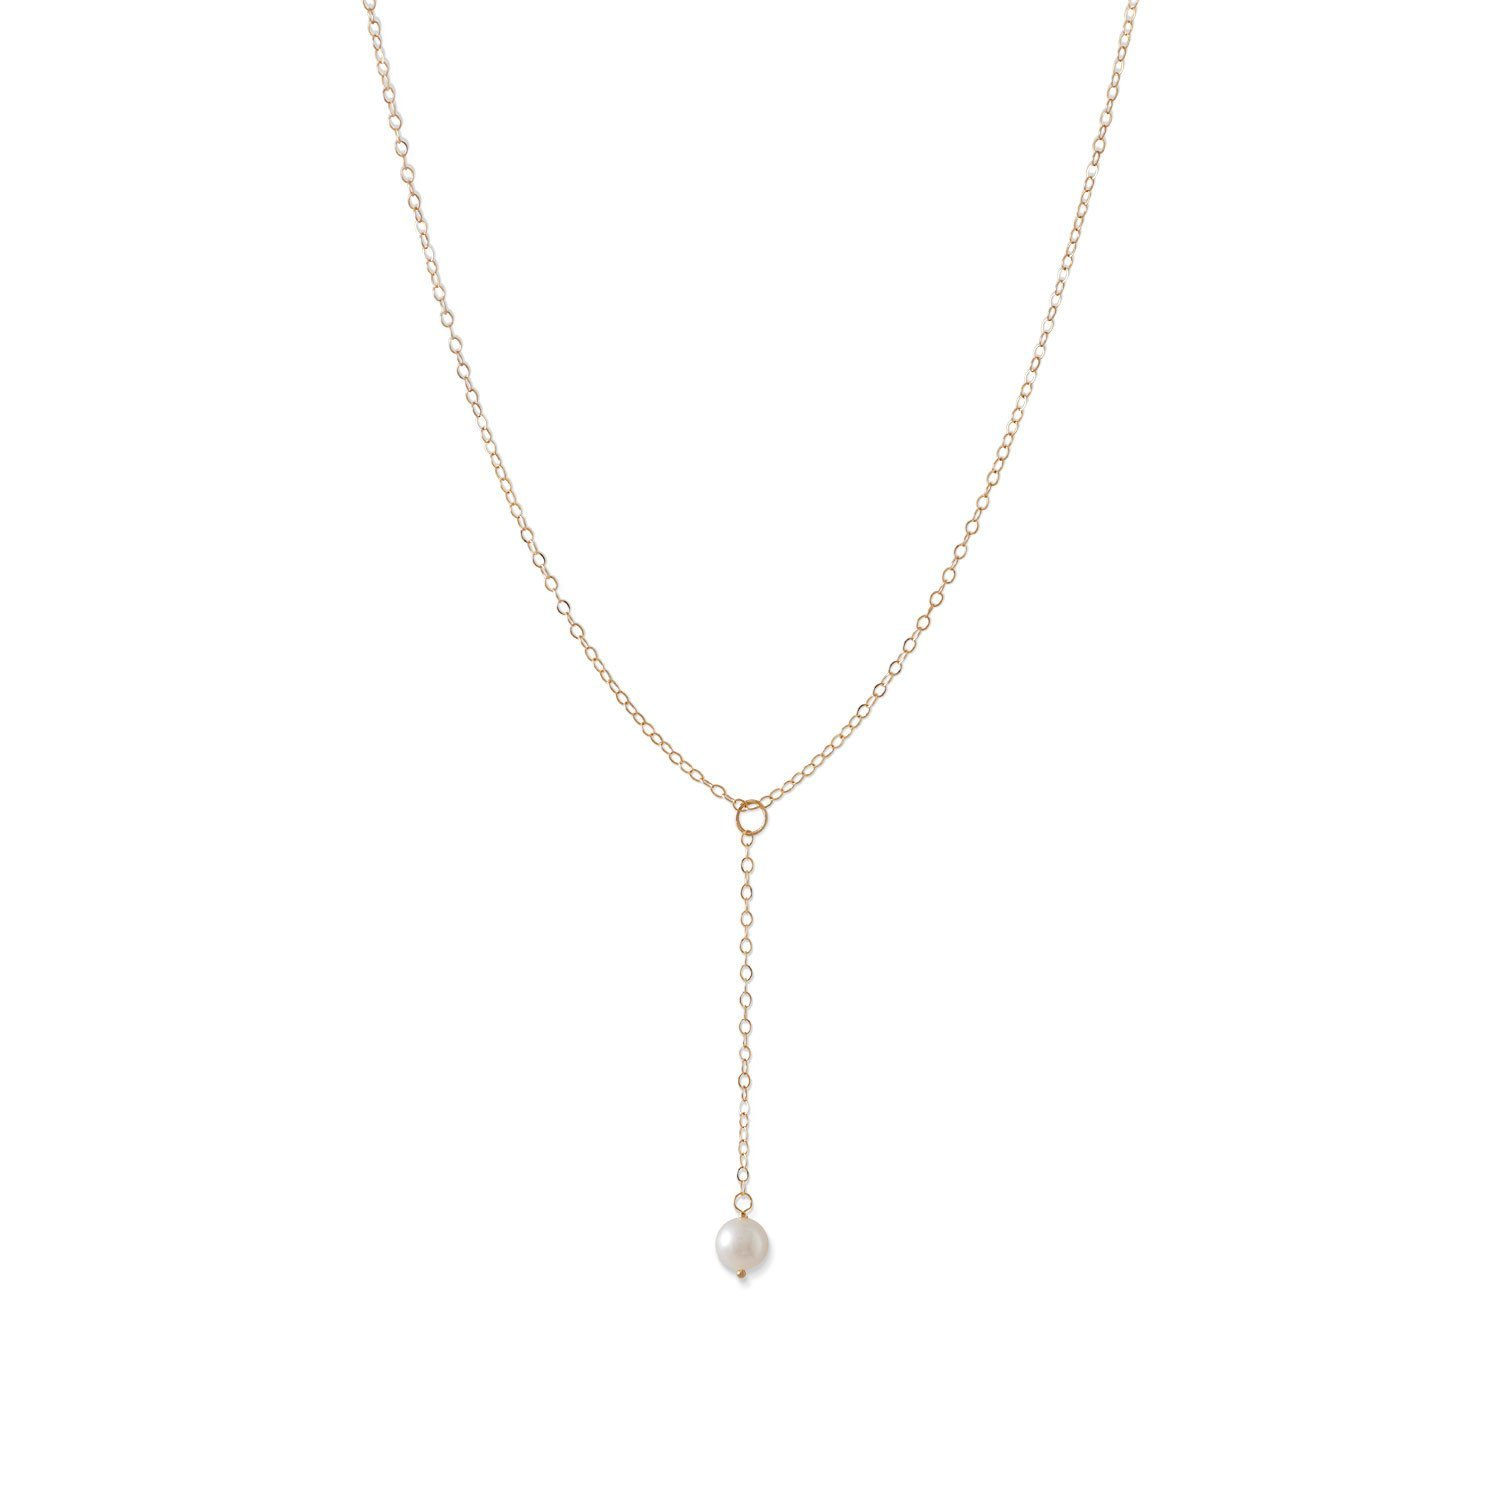 Cultured Freshwater Pearl Necklace Y-style 14k Yellow Gold